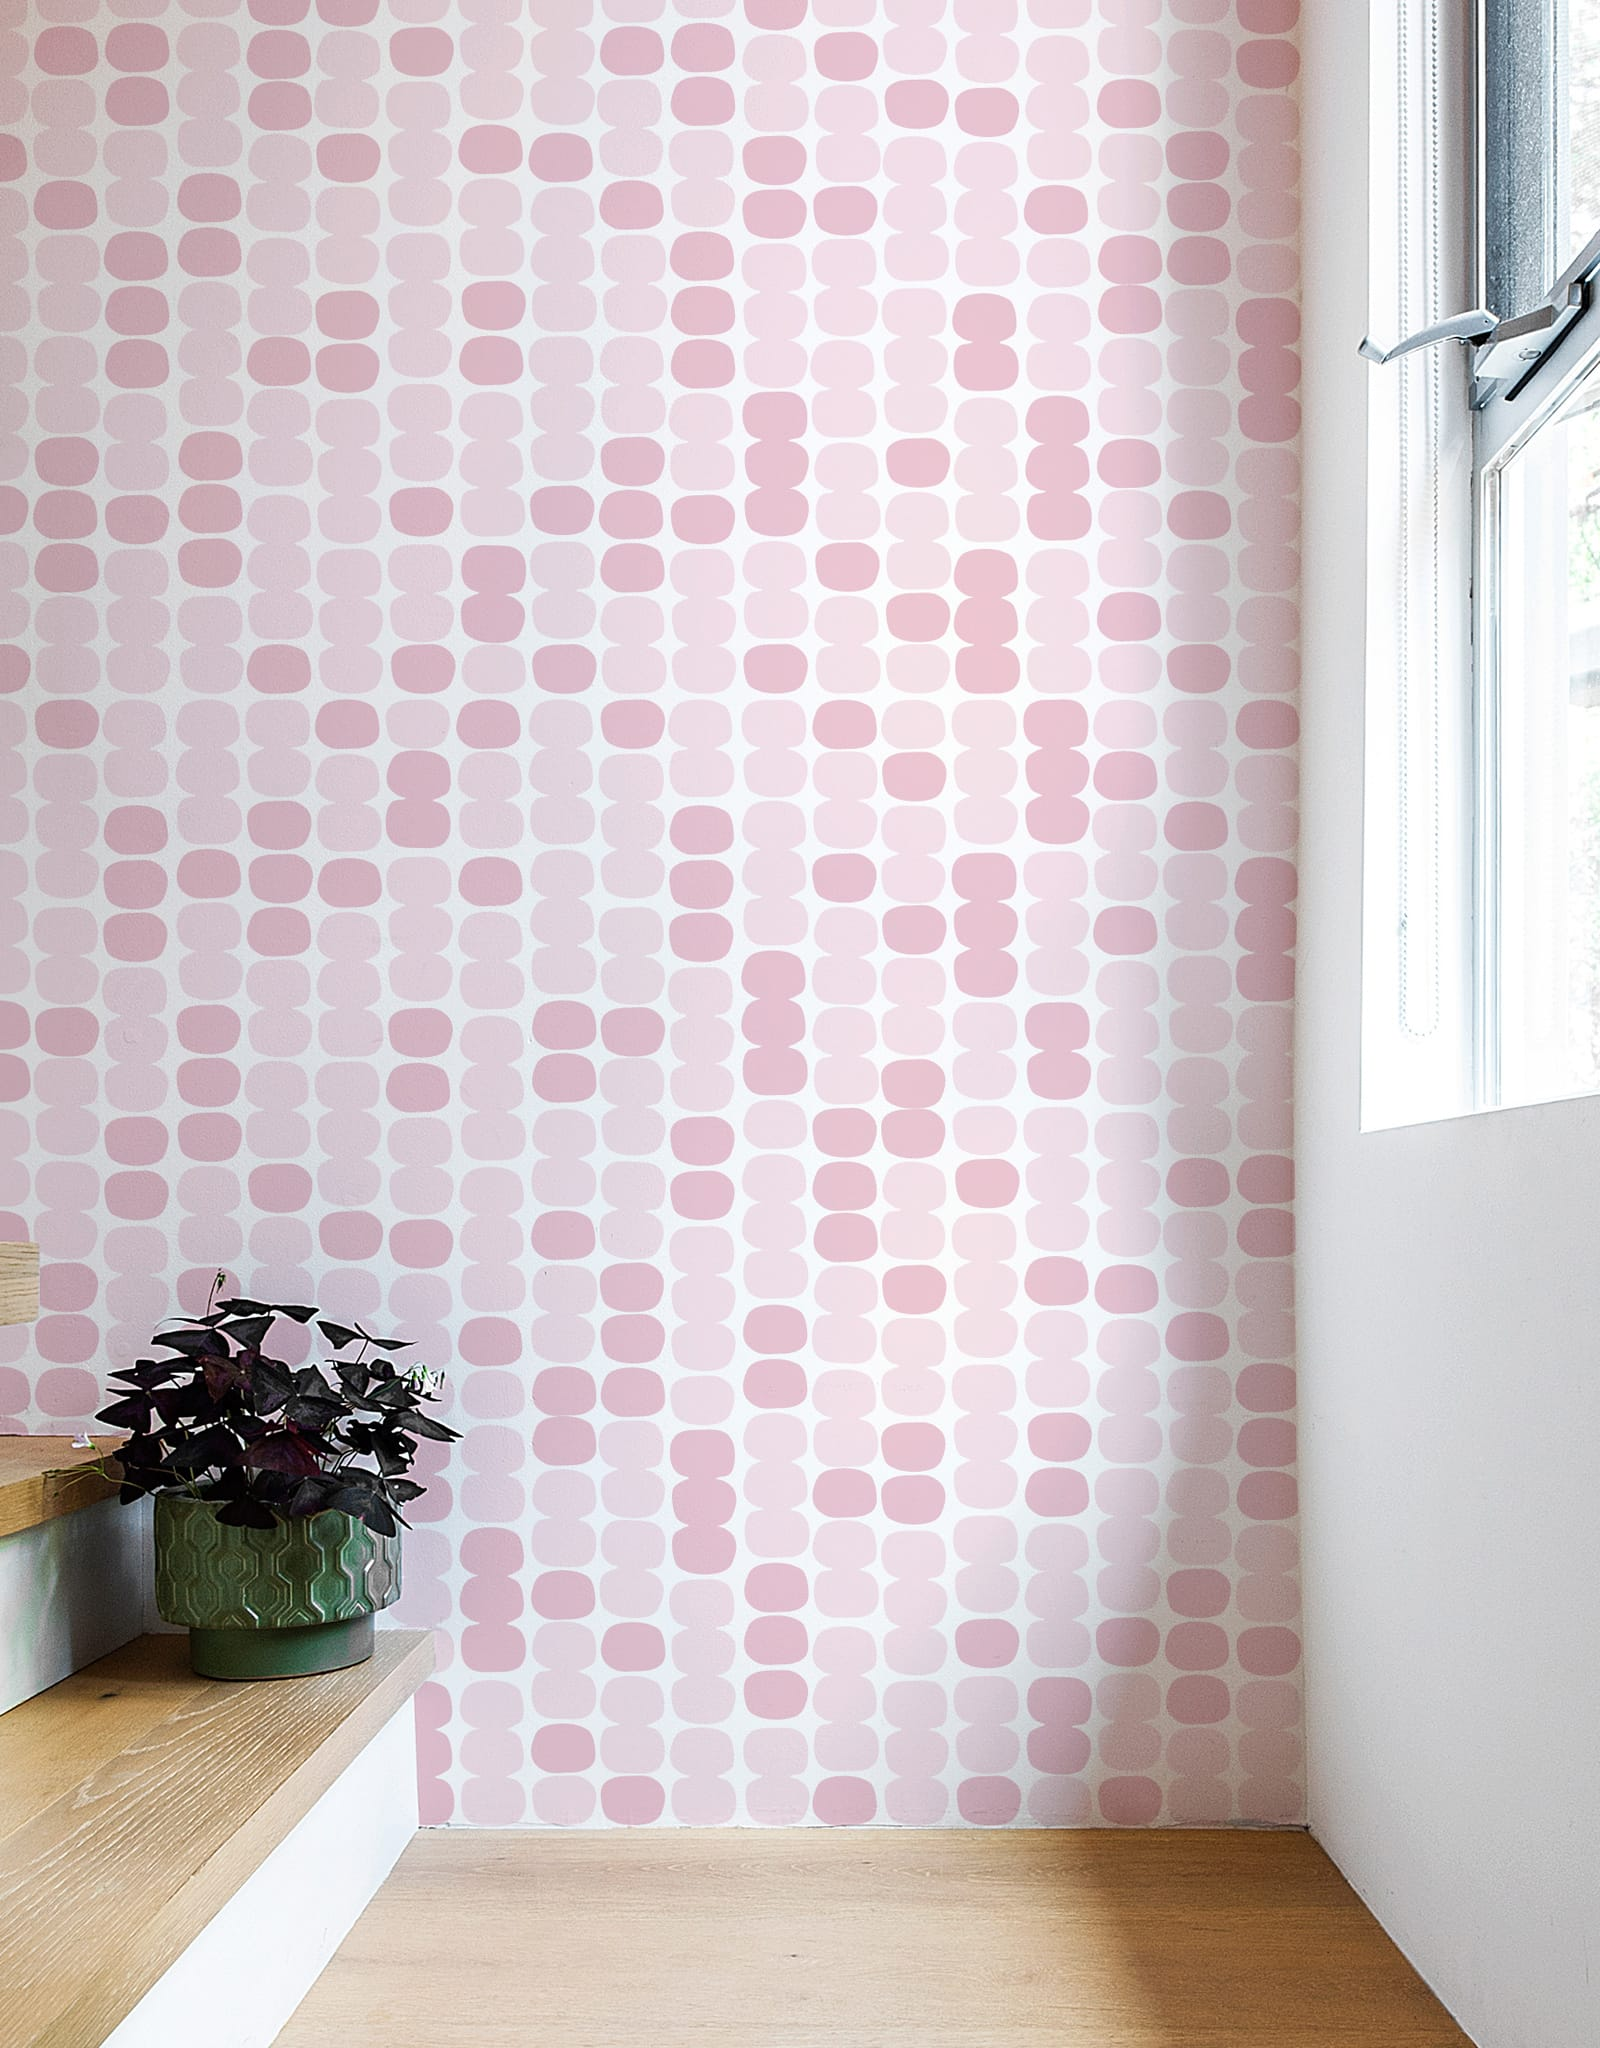 Pebbles Pattern Wall Tiles. Patterned Wall Tiles   Fabric Wall Tiles   Blik